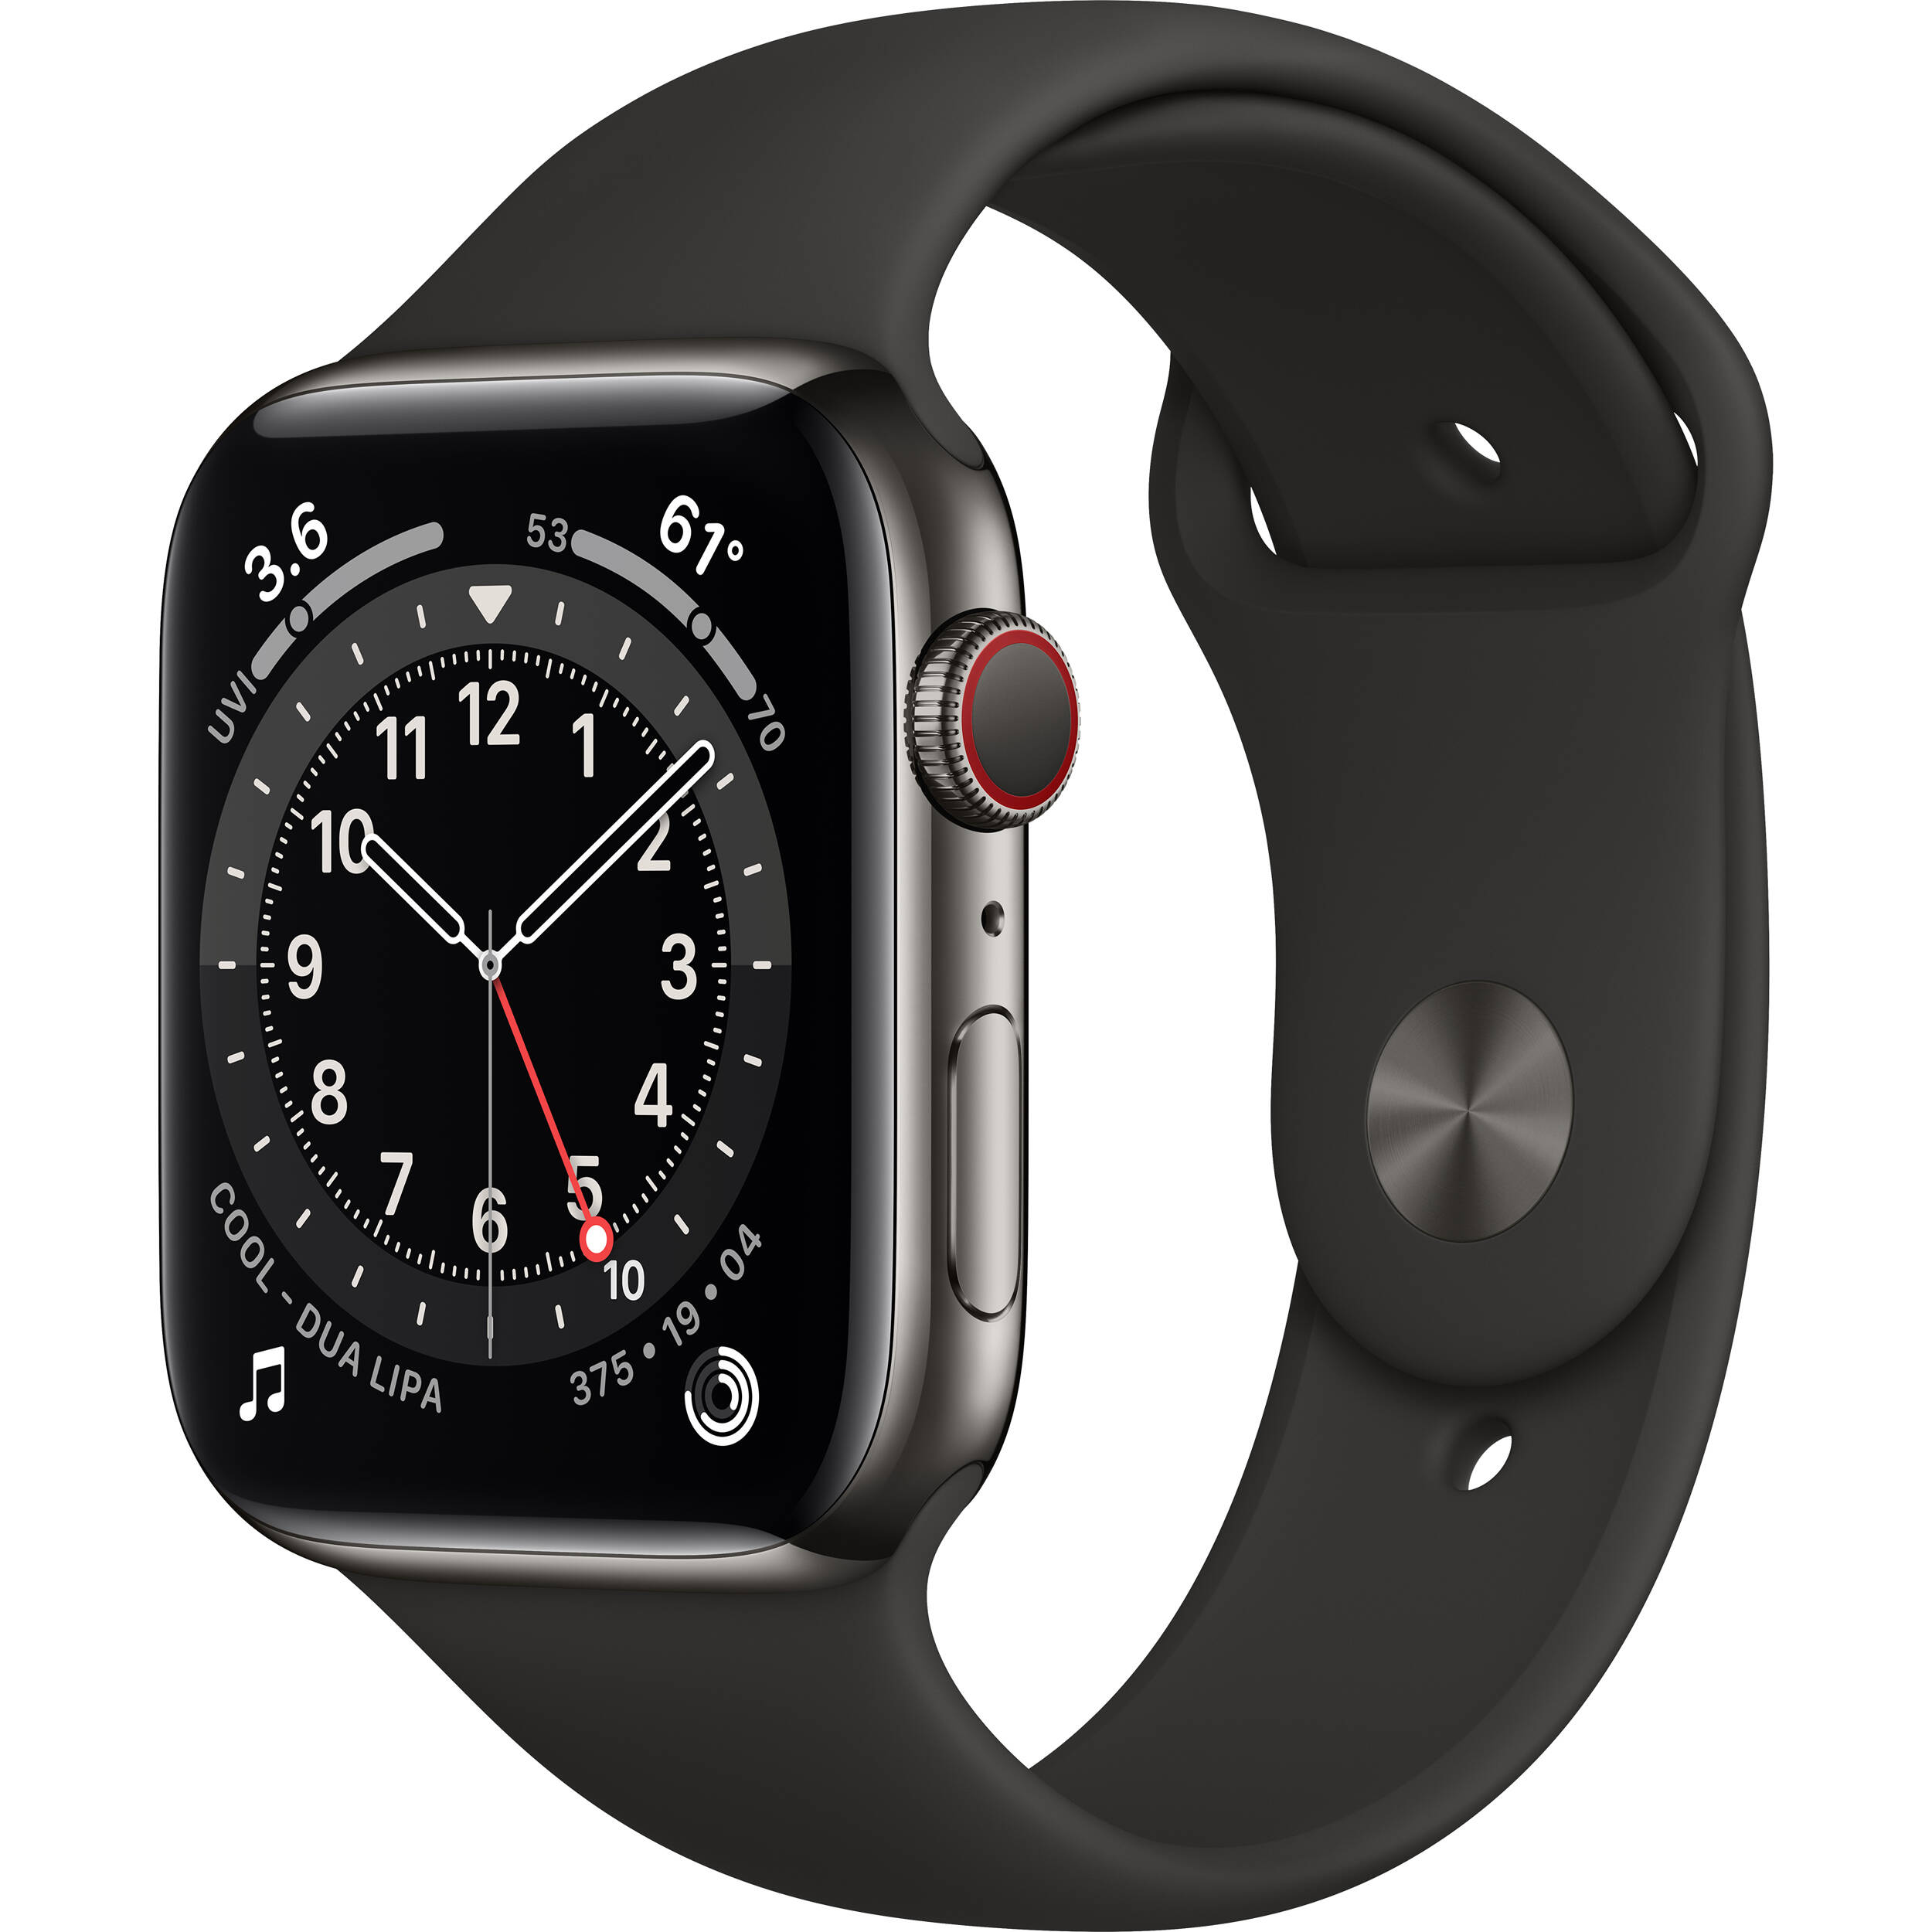 Apple Watch Series 6 M07Q3LL/A B&H Photo Video